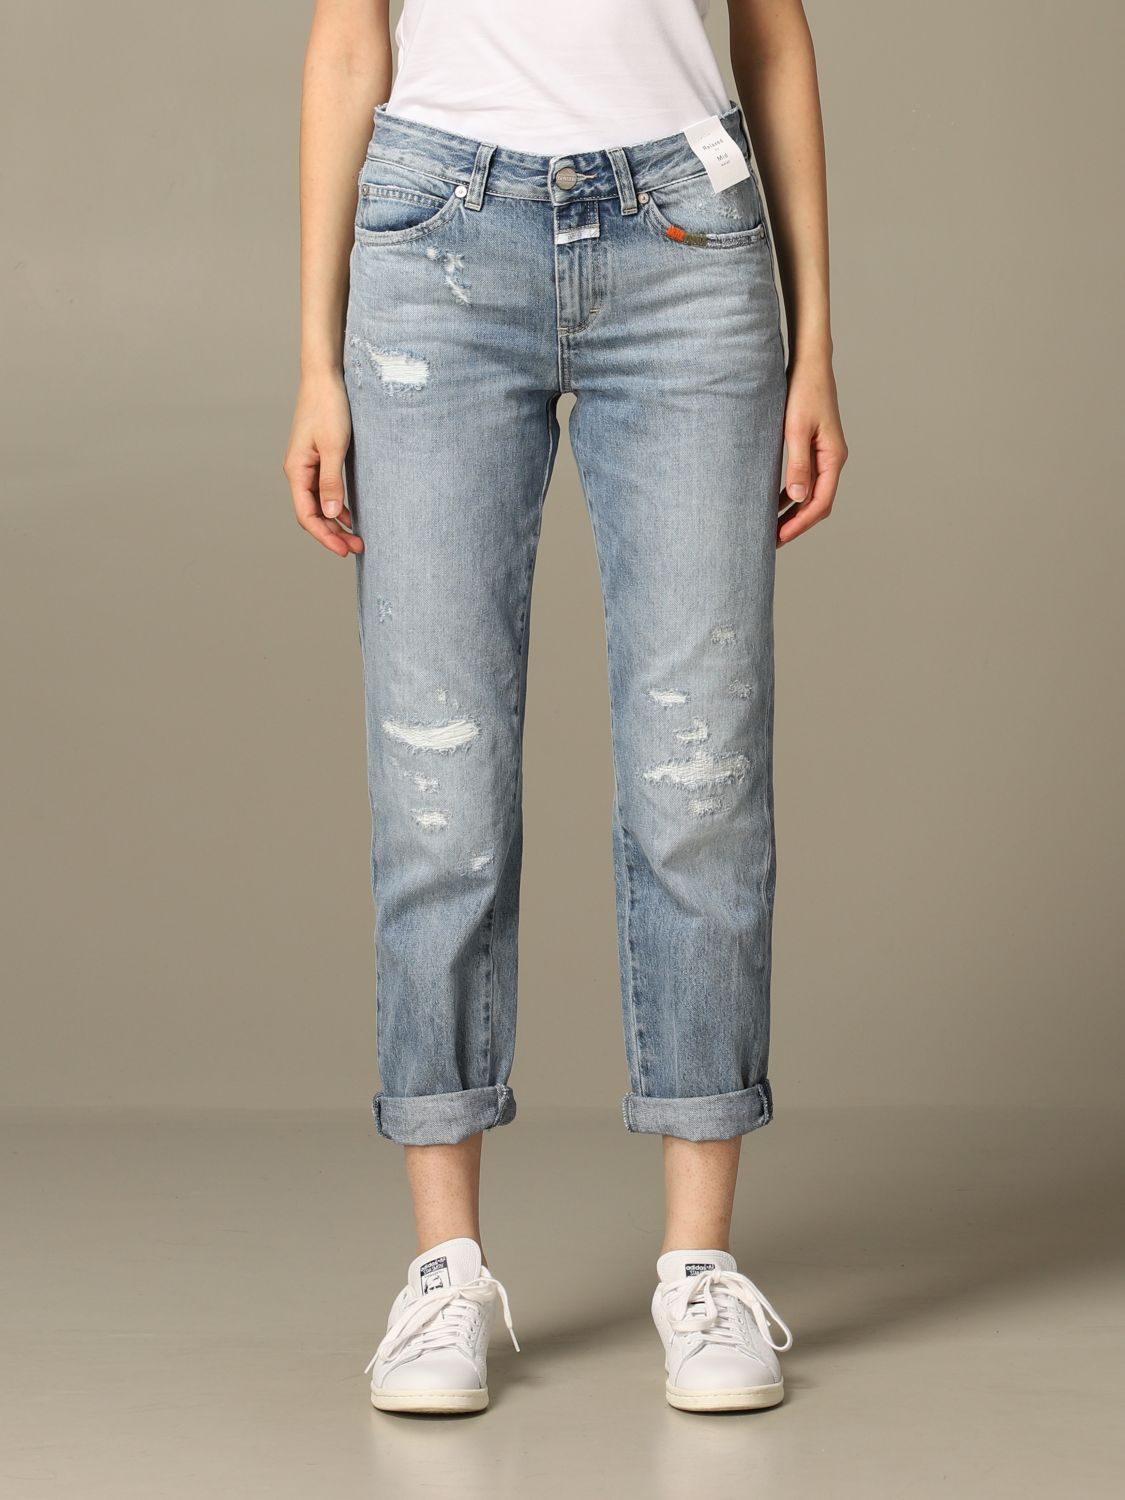 Jeans Closed: Jeans women Closed blue 1